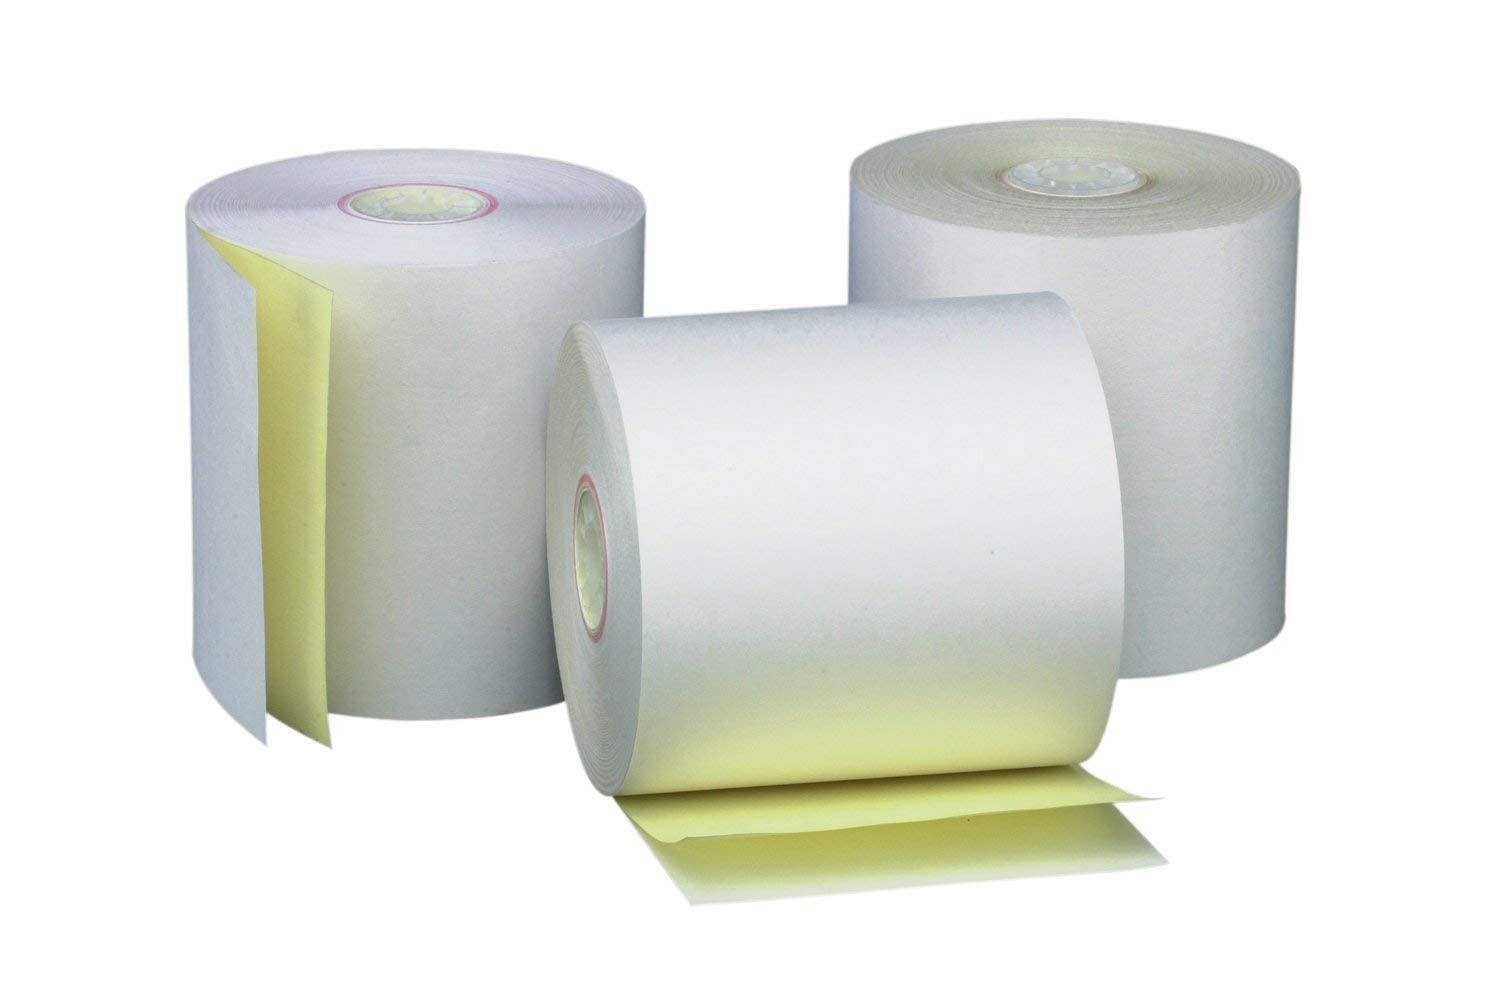 PM Company Perfection Two Ply Carbonless Rolls, 3 X 95 Feet, White/Canary, 50 Rolls Per Carton (07901) (3 X Pack of 50) by PM Company (Image #2)